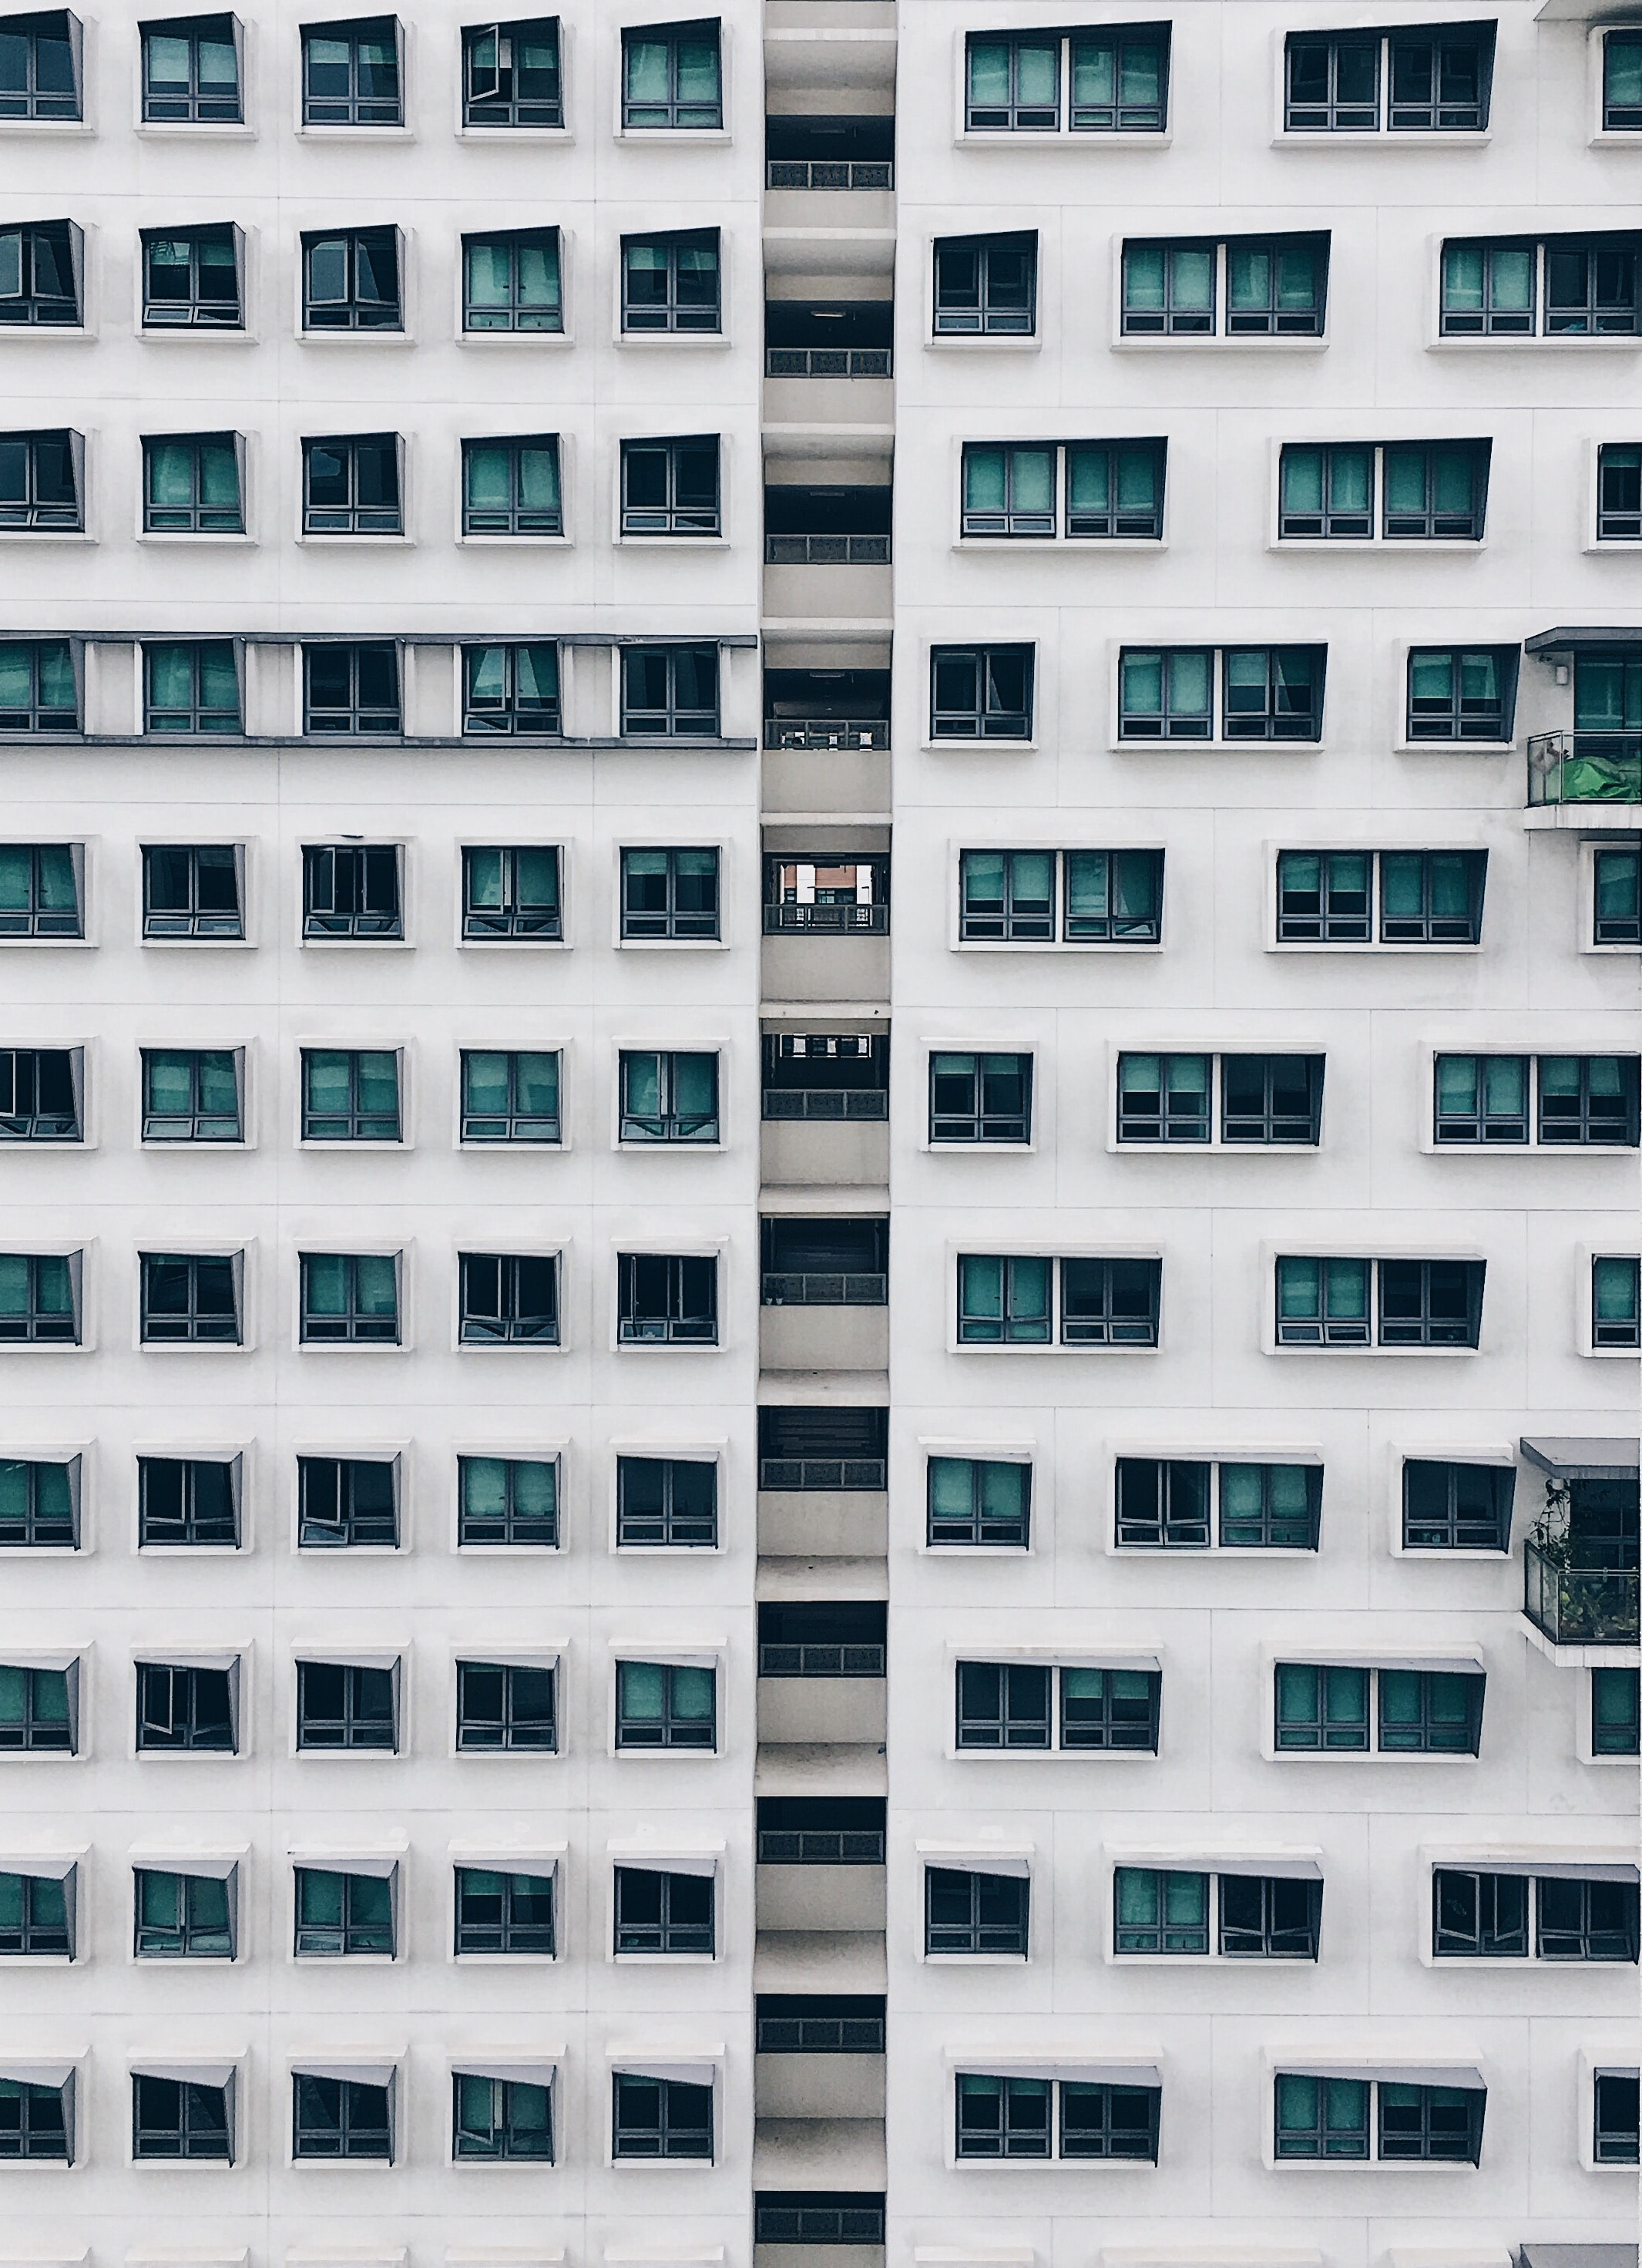 Architecture of apartment building in Singapore with white facade and light blue windows